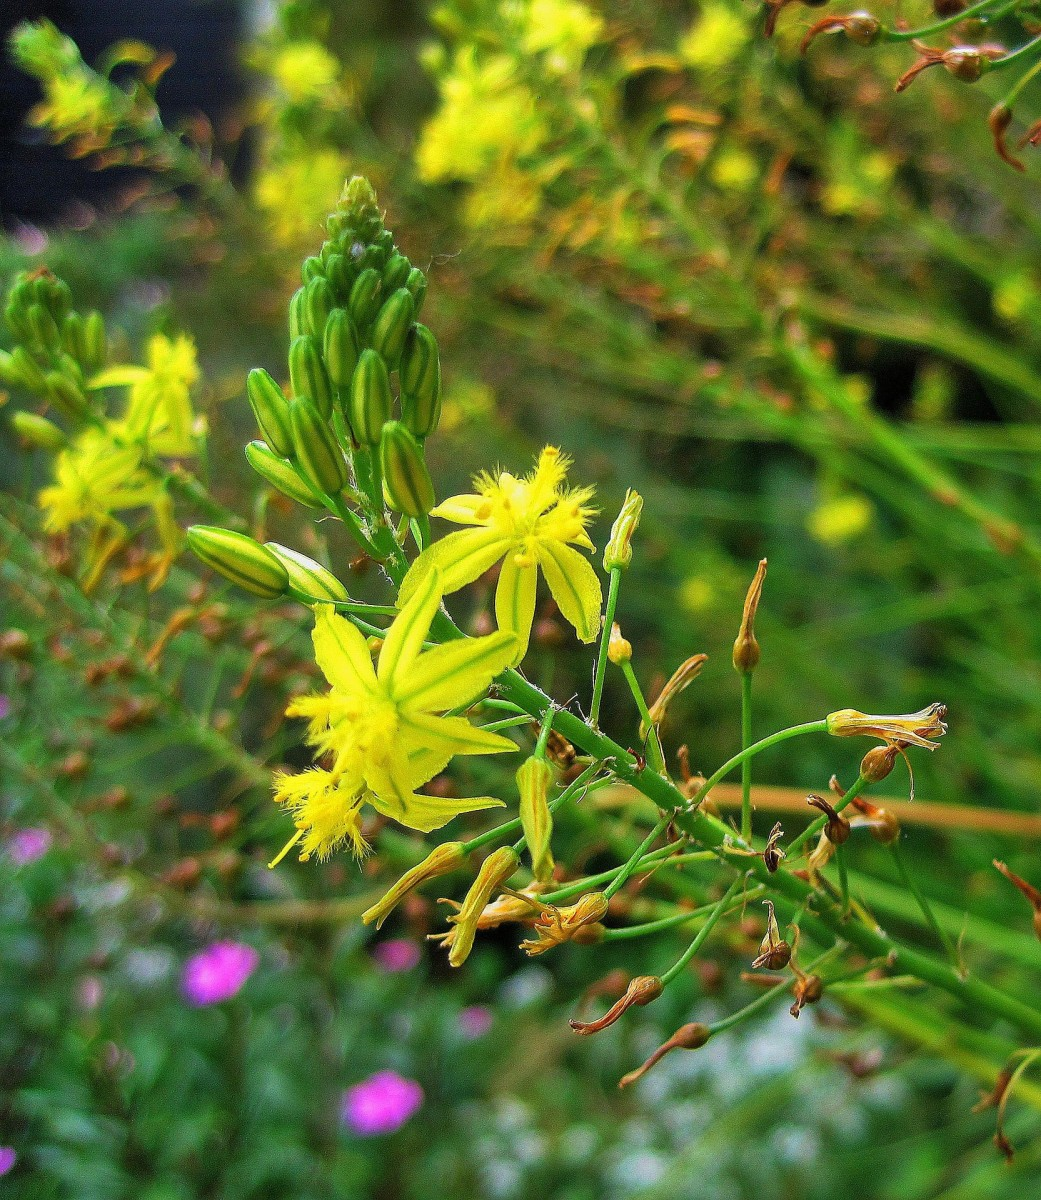 Bulbine frutescens: Bulbinella Medicinal Uses and Herbal Remedies